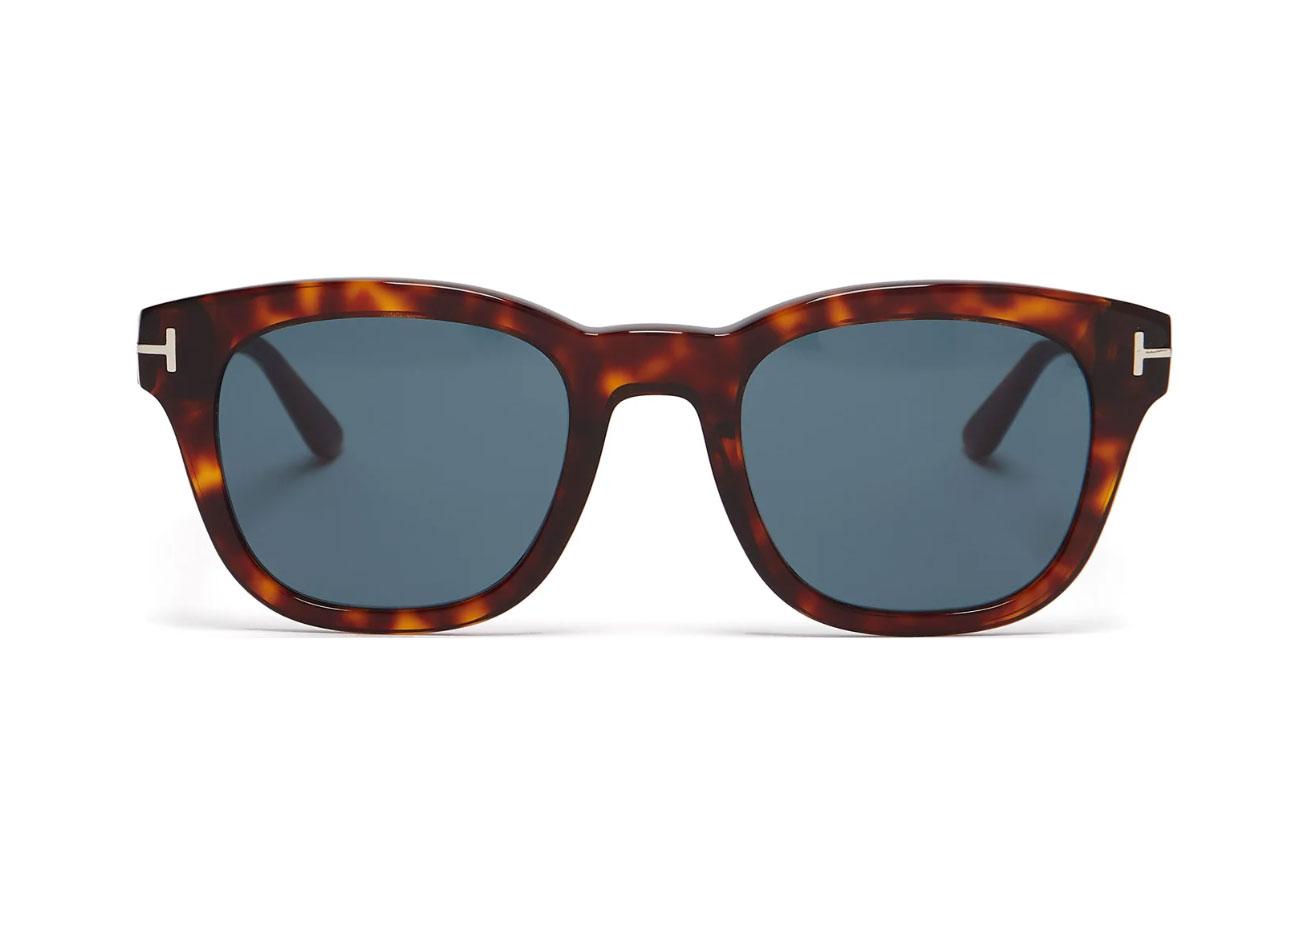 TOM FORD EYEWEAR Square-frame tortoiseshell acetate sunglasses